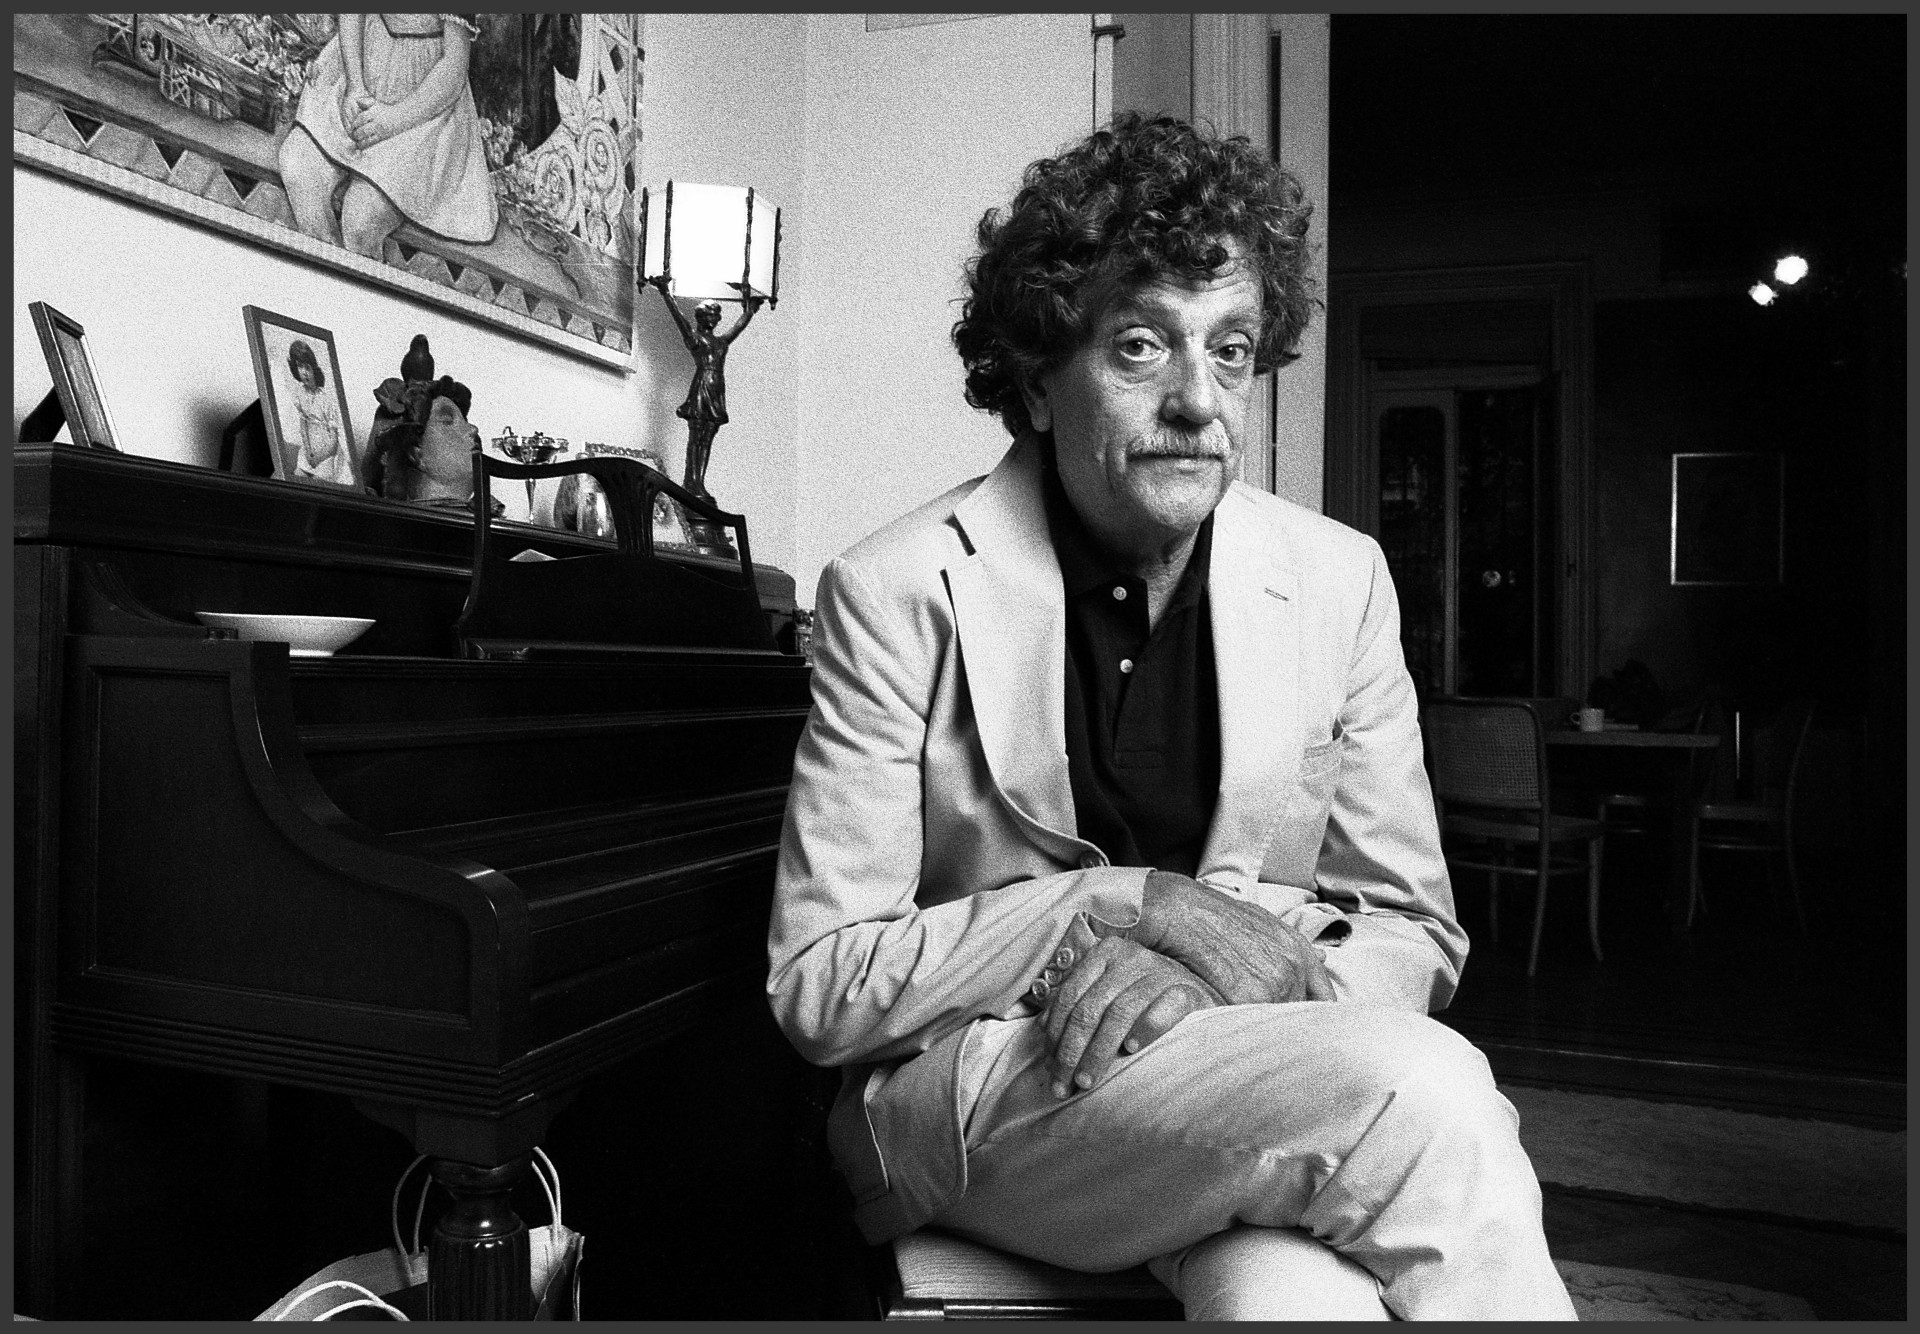 player piano by kurt vonnegut essays The daily vonnegut welcomes essays about the life and work of kurt vonnegut and reflections on the personal and public influence of vonnegut's work.